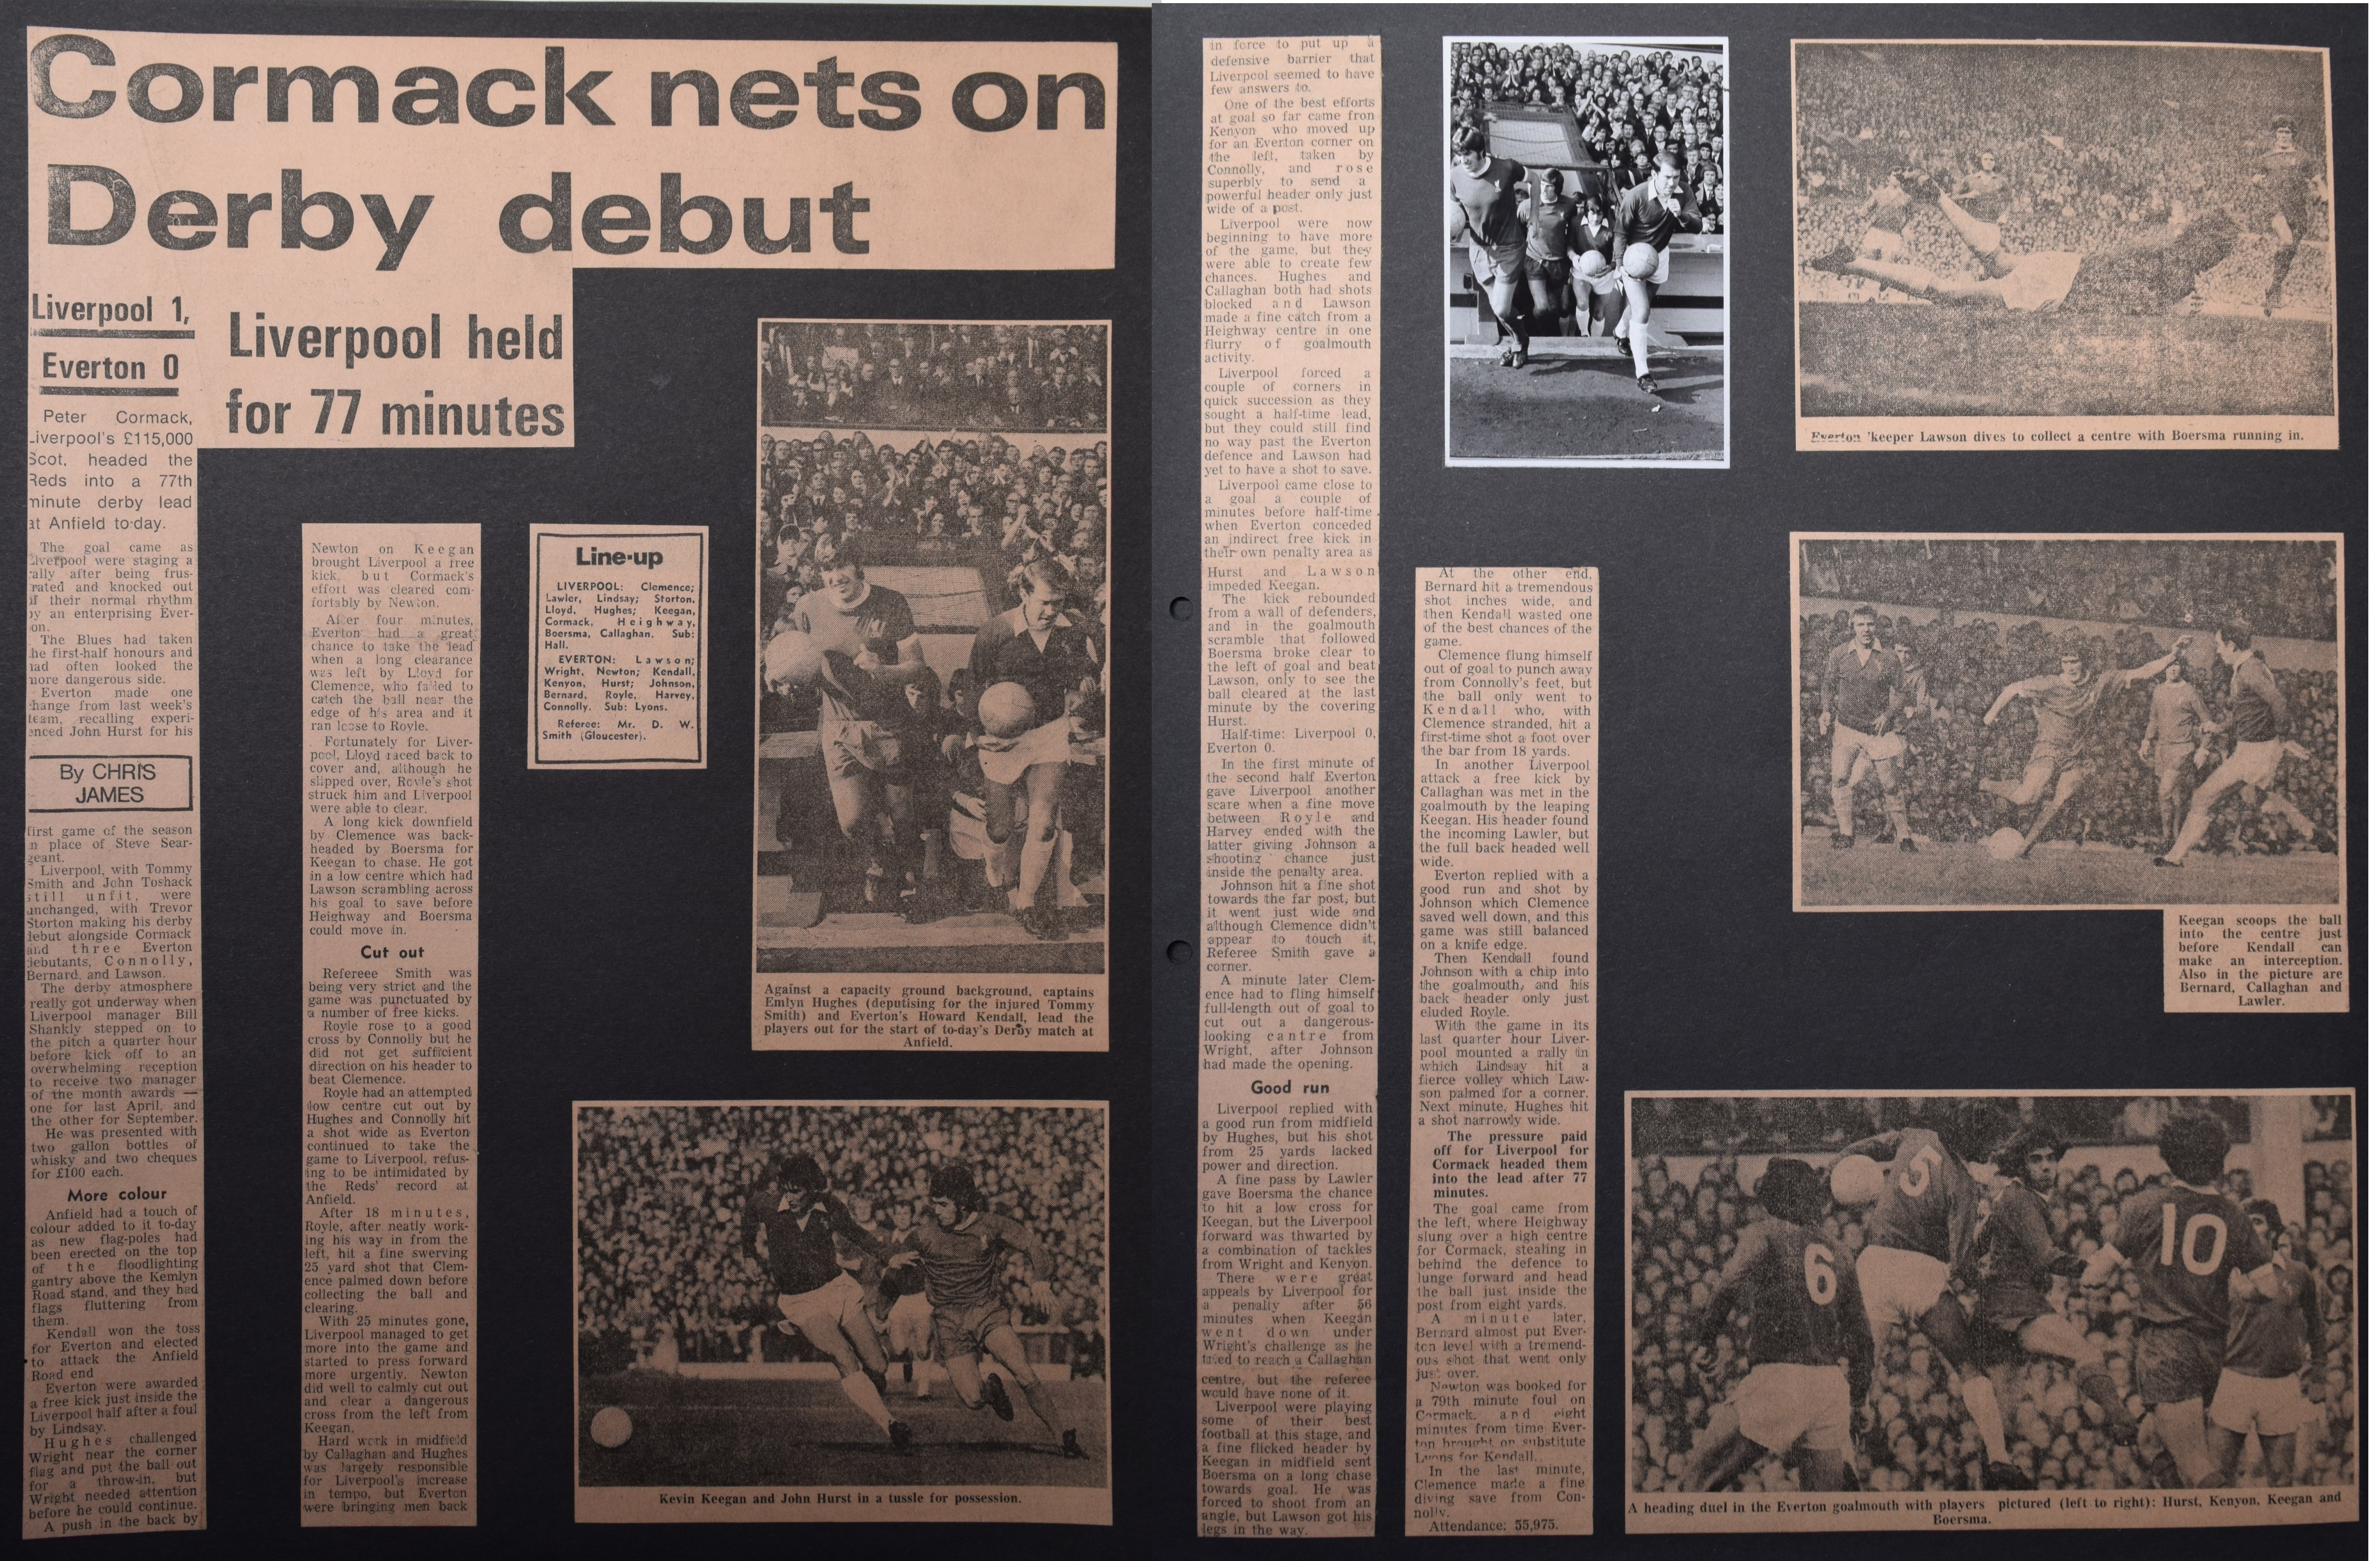 Cormack nets on derby debut - 7 October 1972